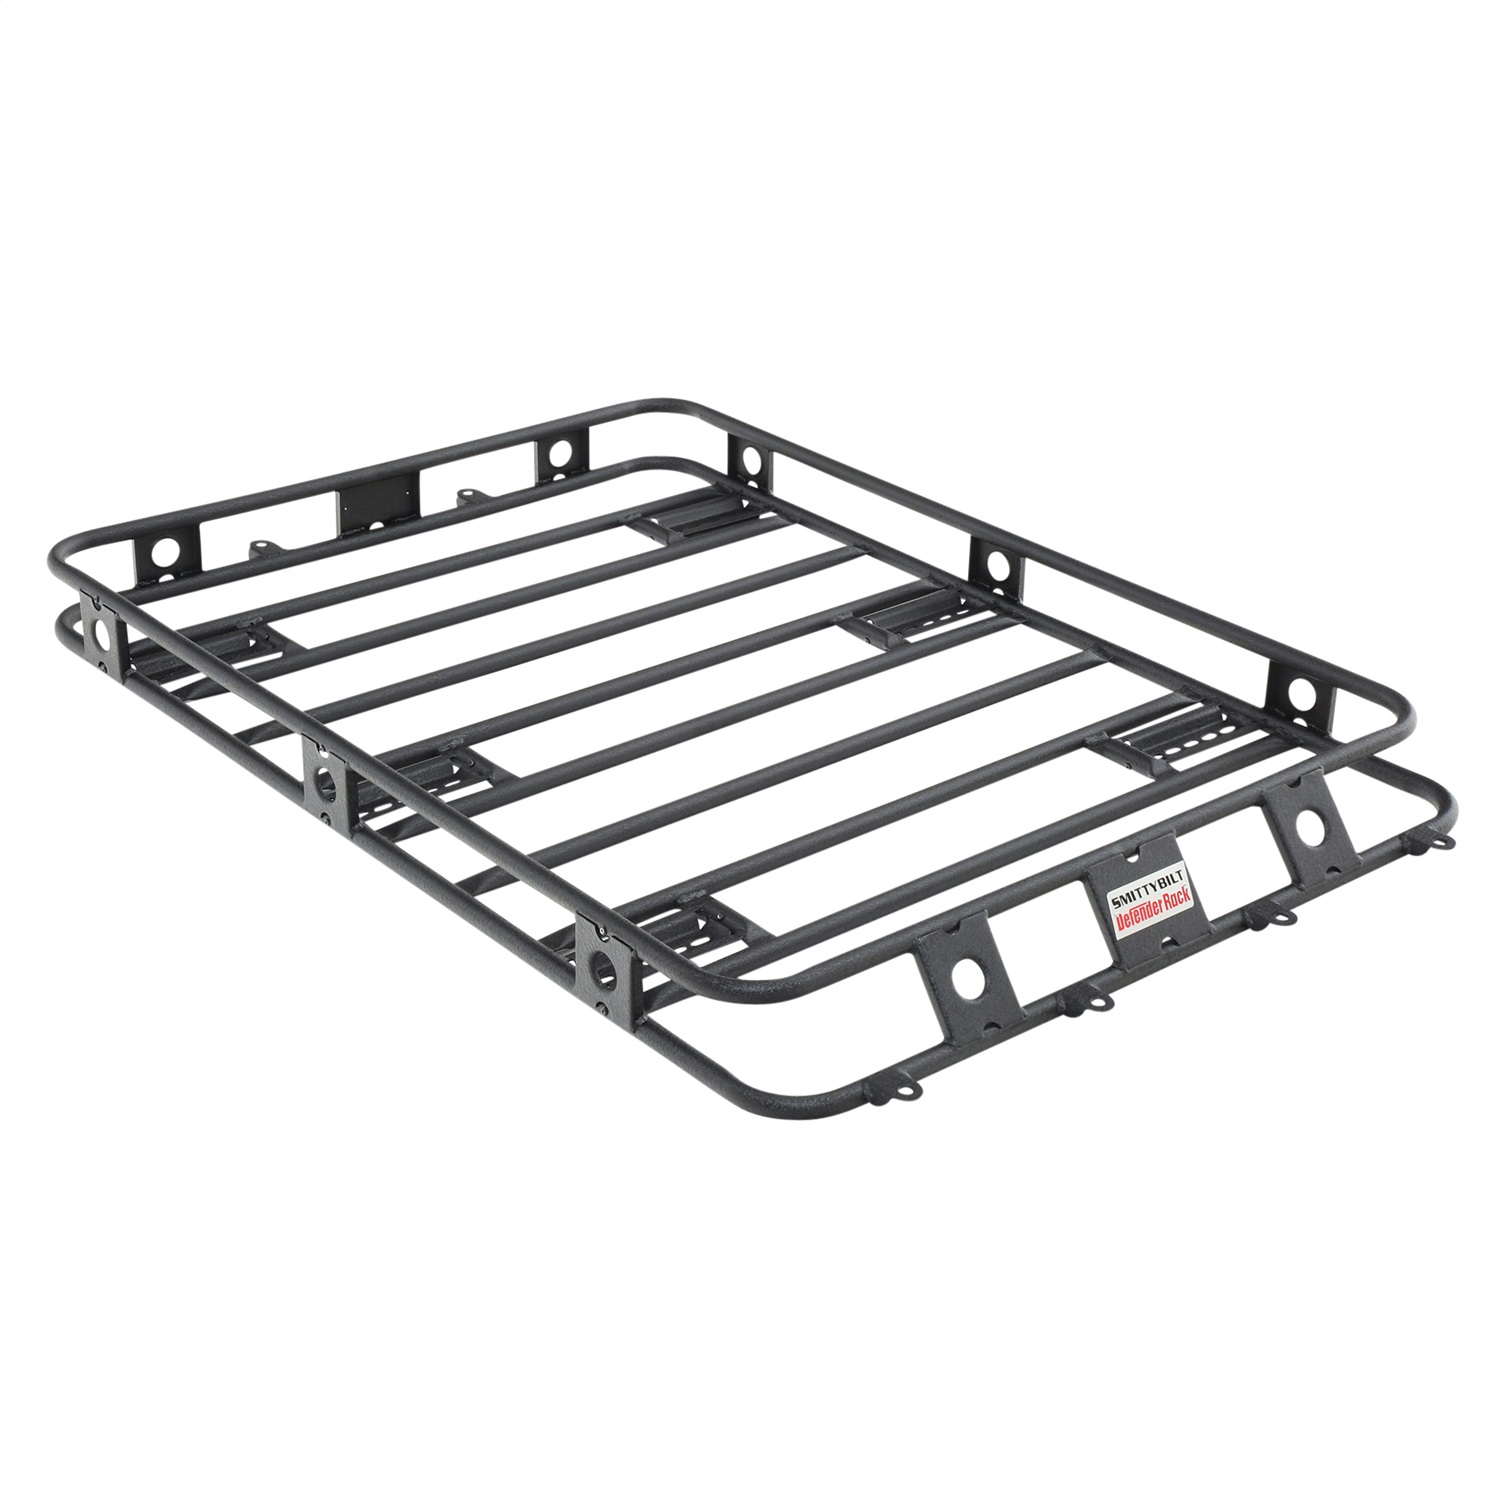 SMITTY BILT 35504 Roof Rack